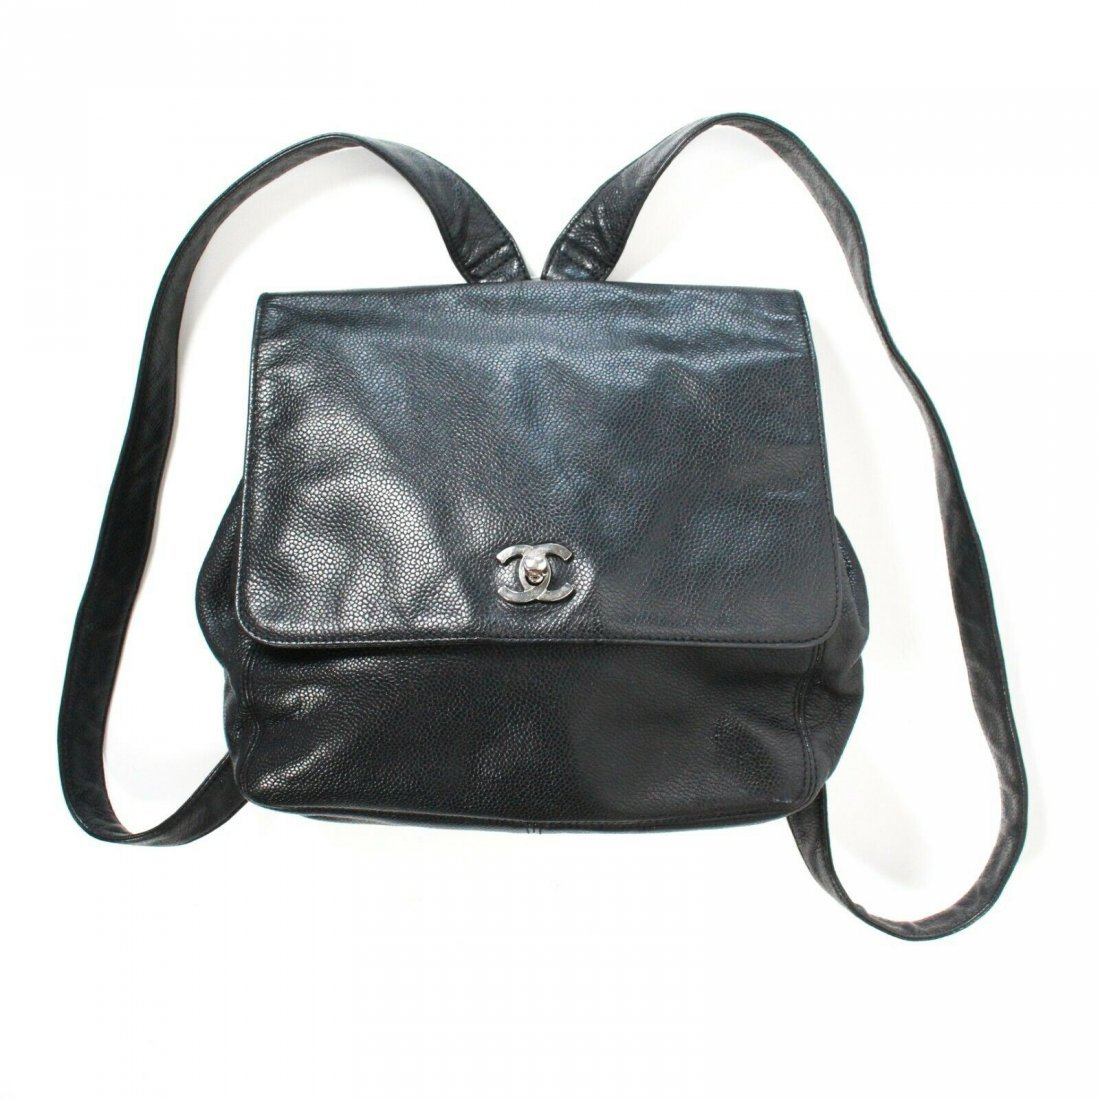 Chanel - Vintage Backpack - Caviar Leather - CC - S/M